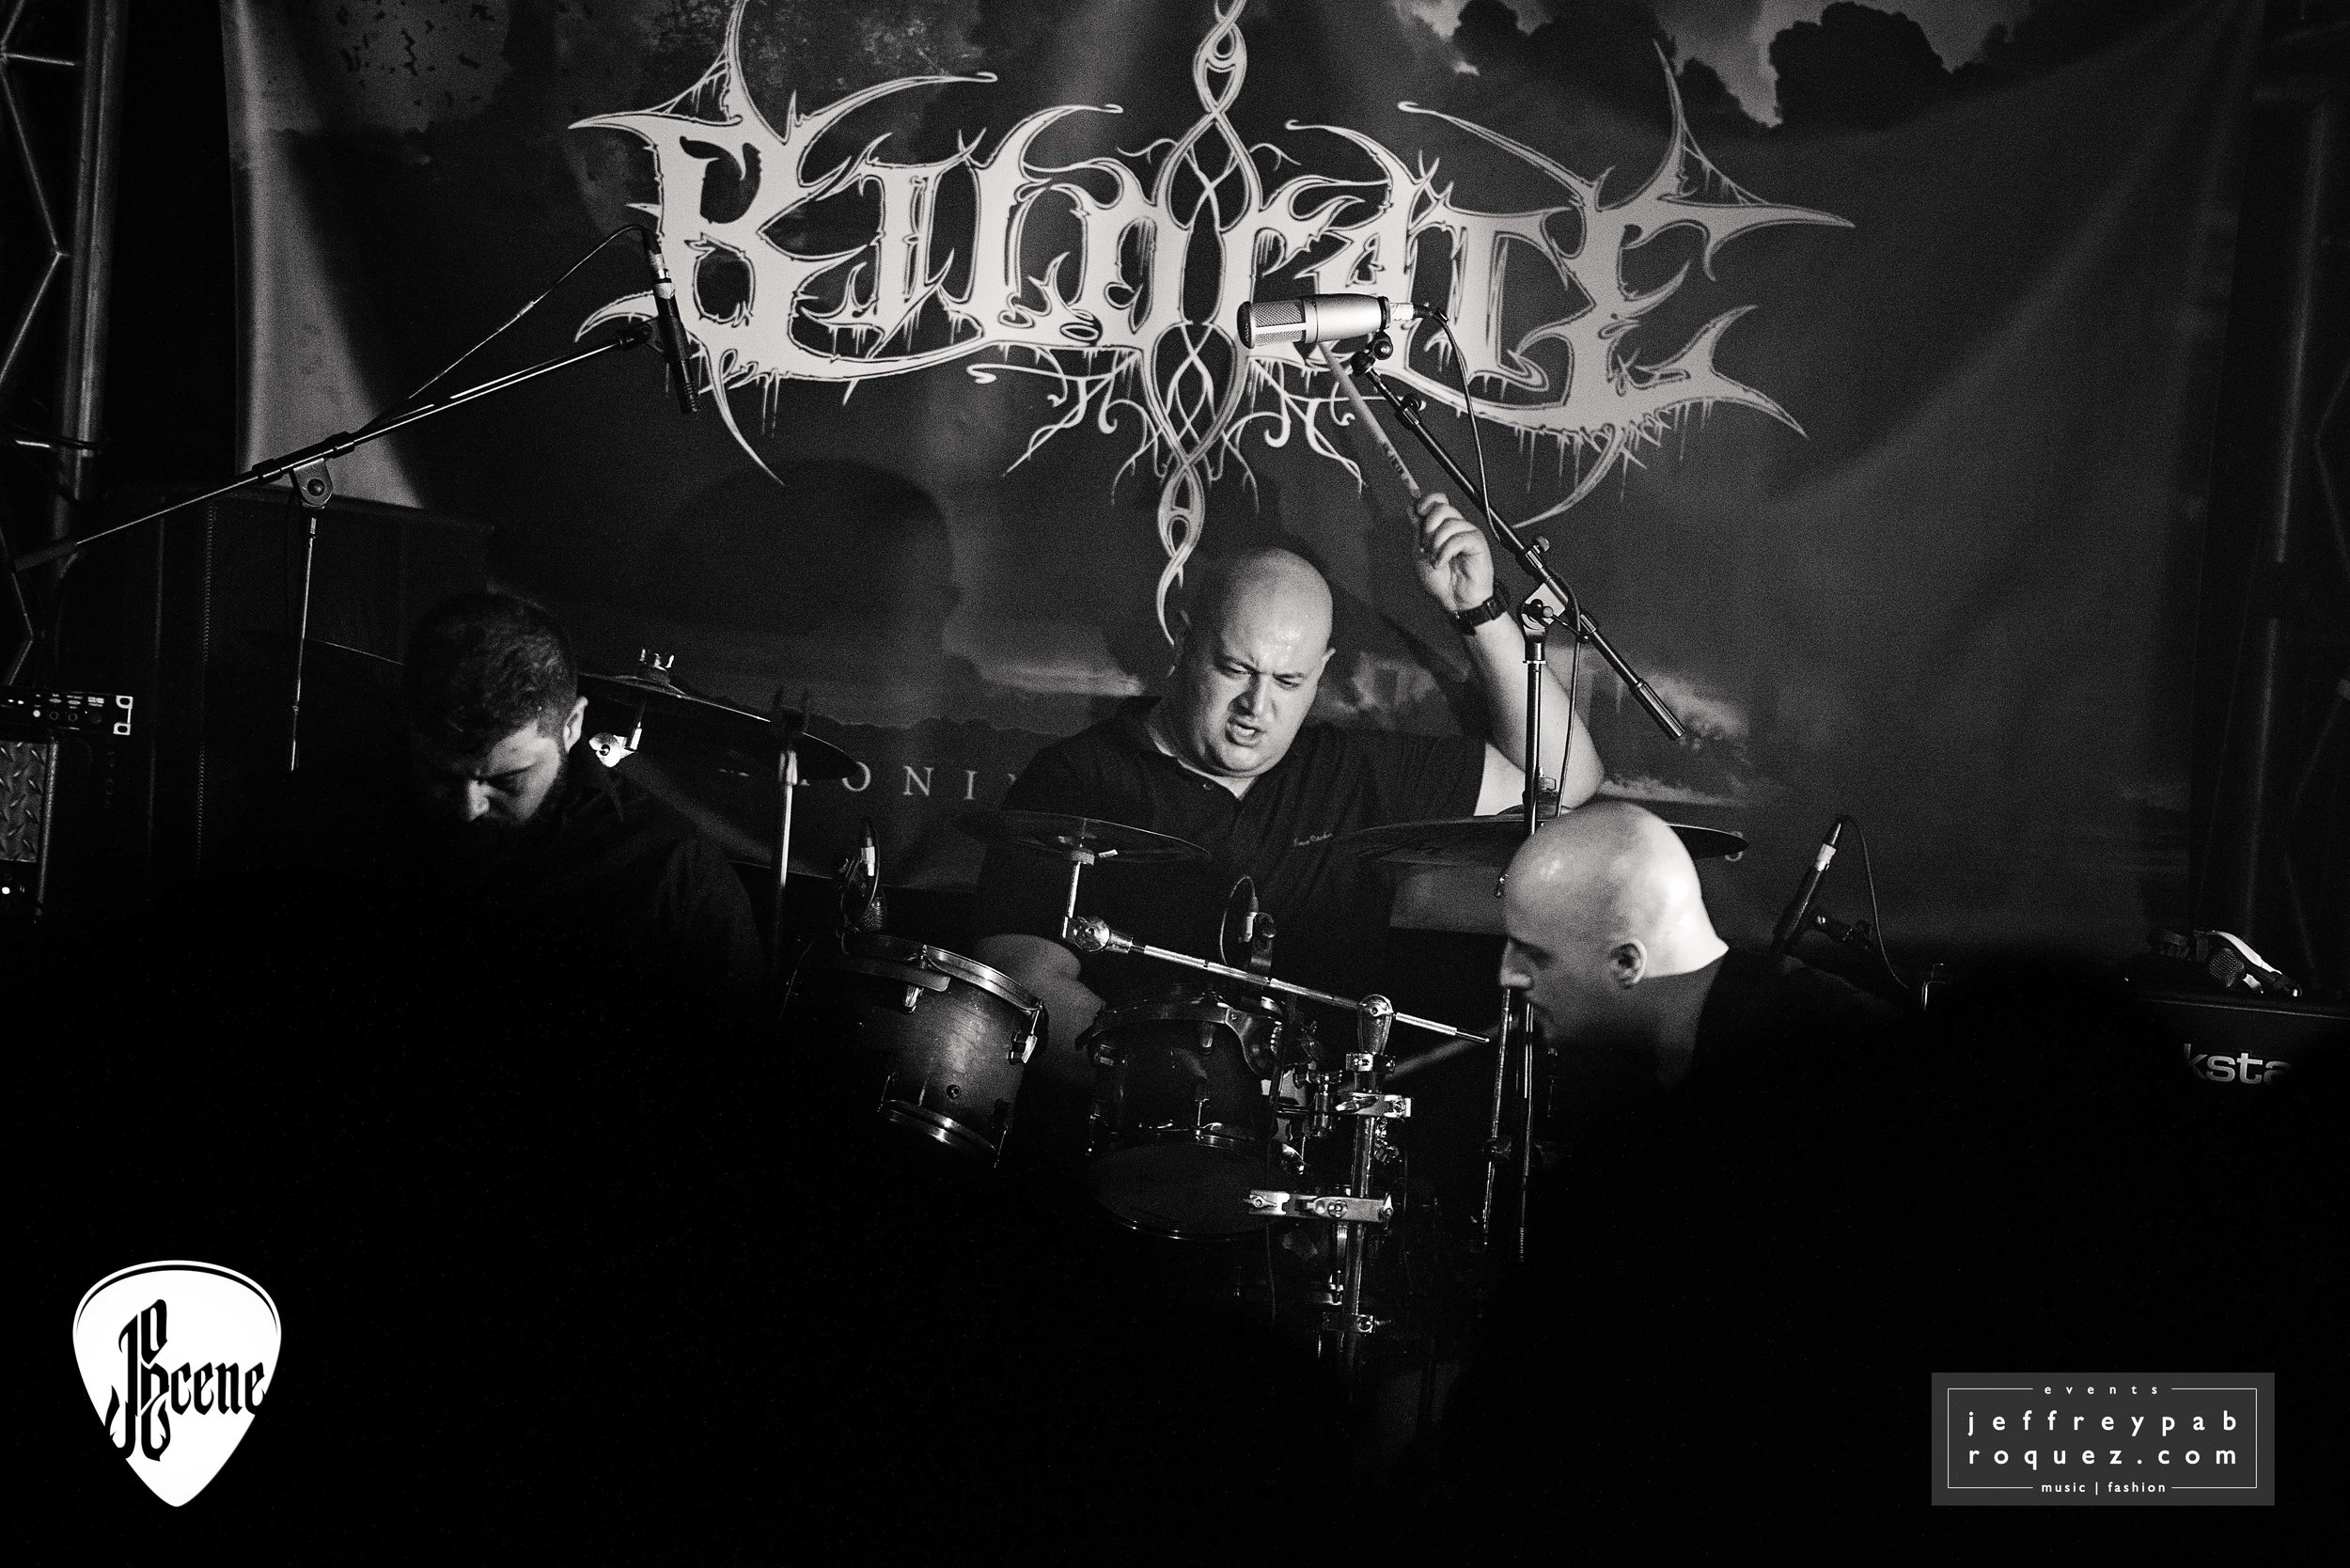 Katatonia_20170105_0265 copy.jpg